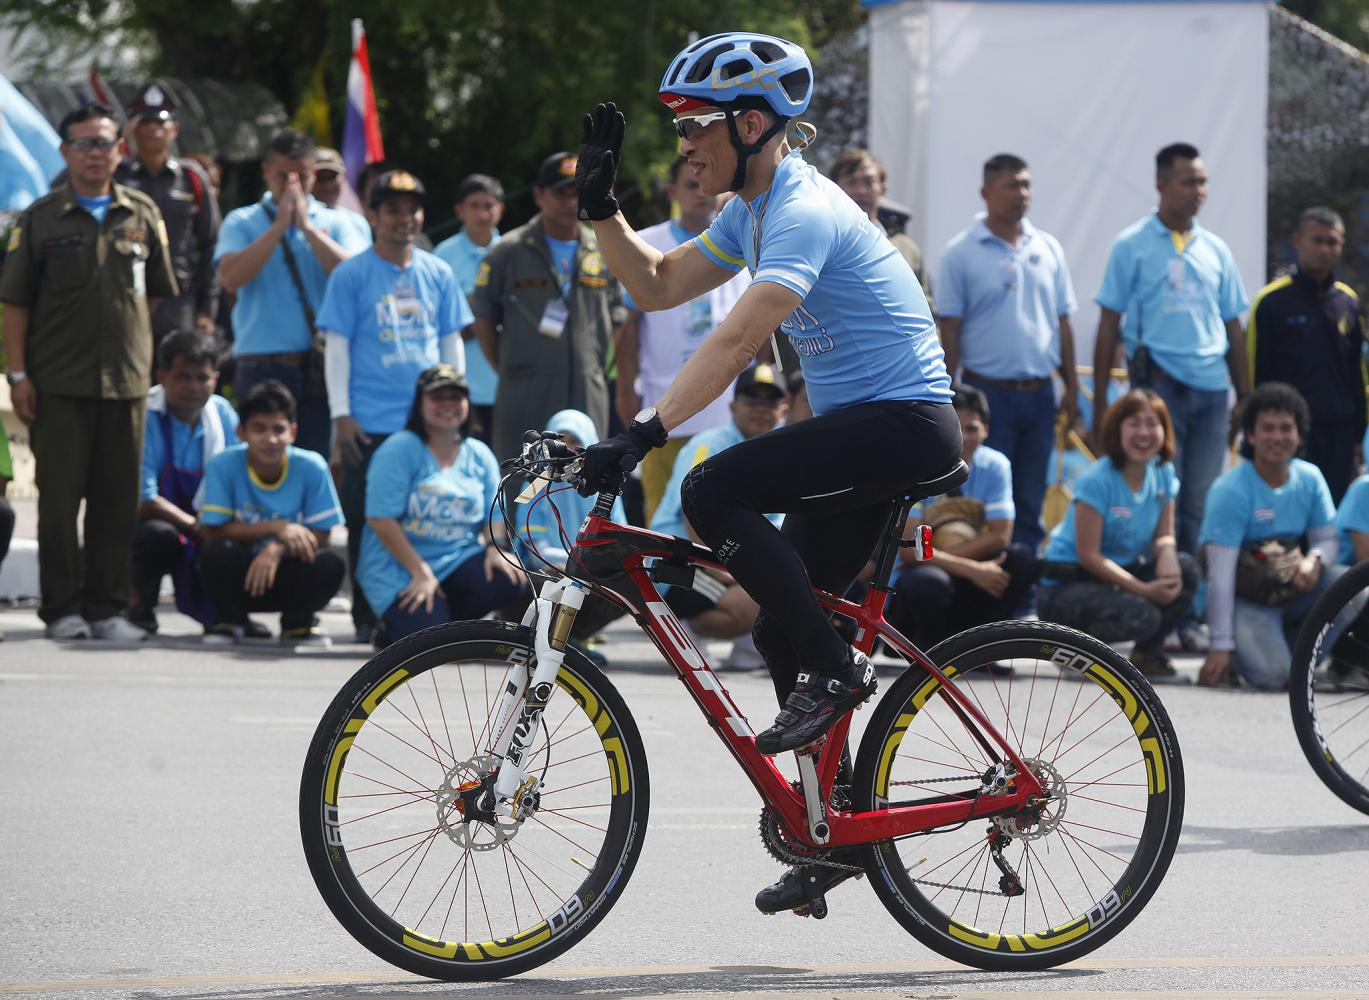 His Majesty the King leads the Bike for Mom event in 2015.